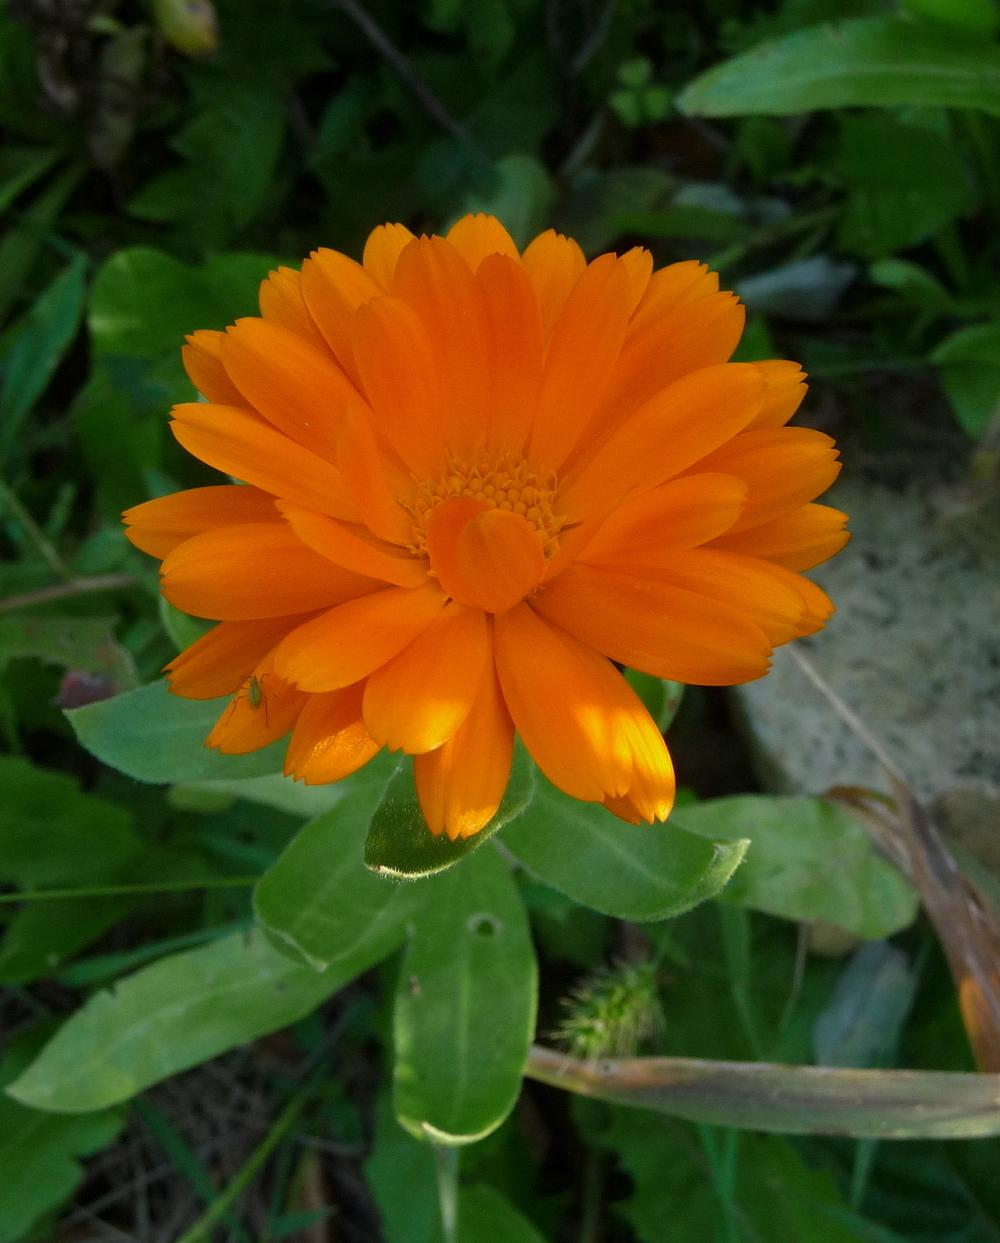 Photo of Calendula uploaded by gardengus